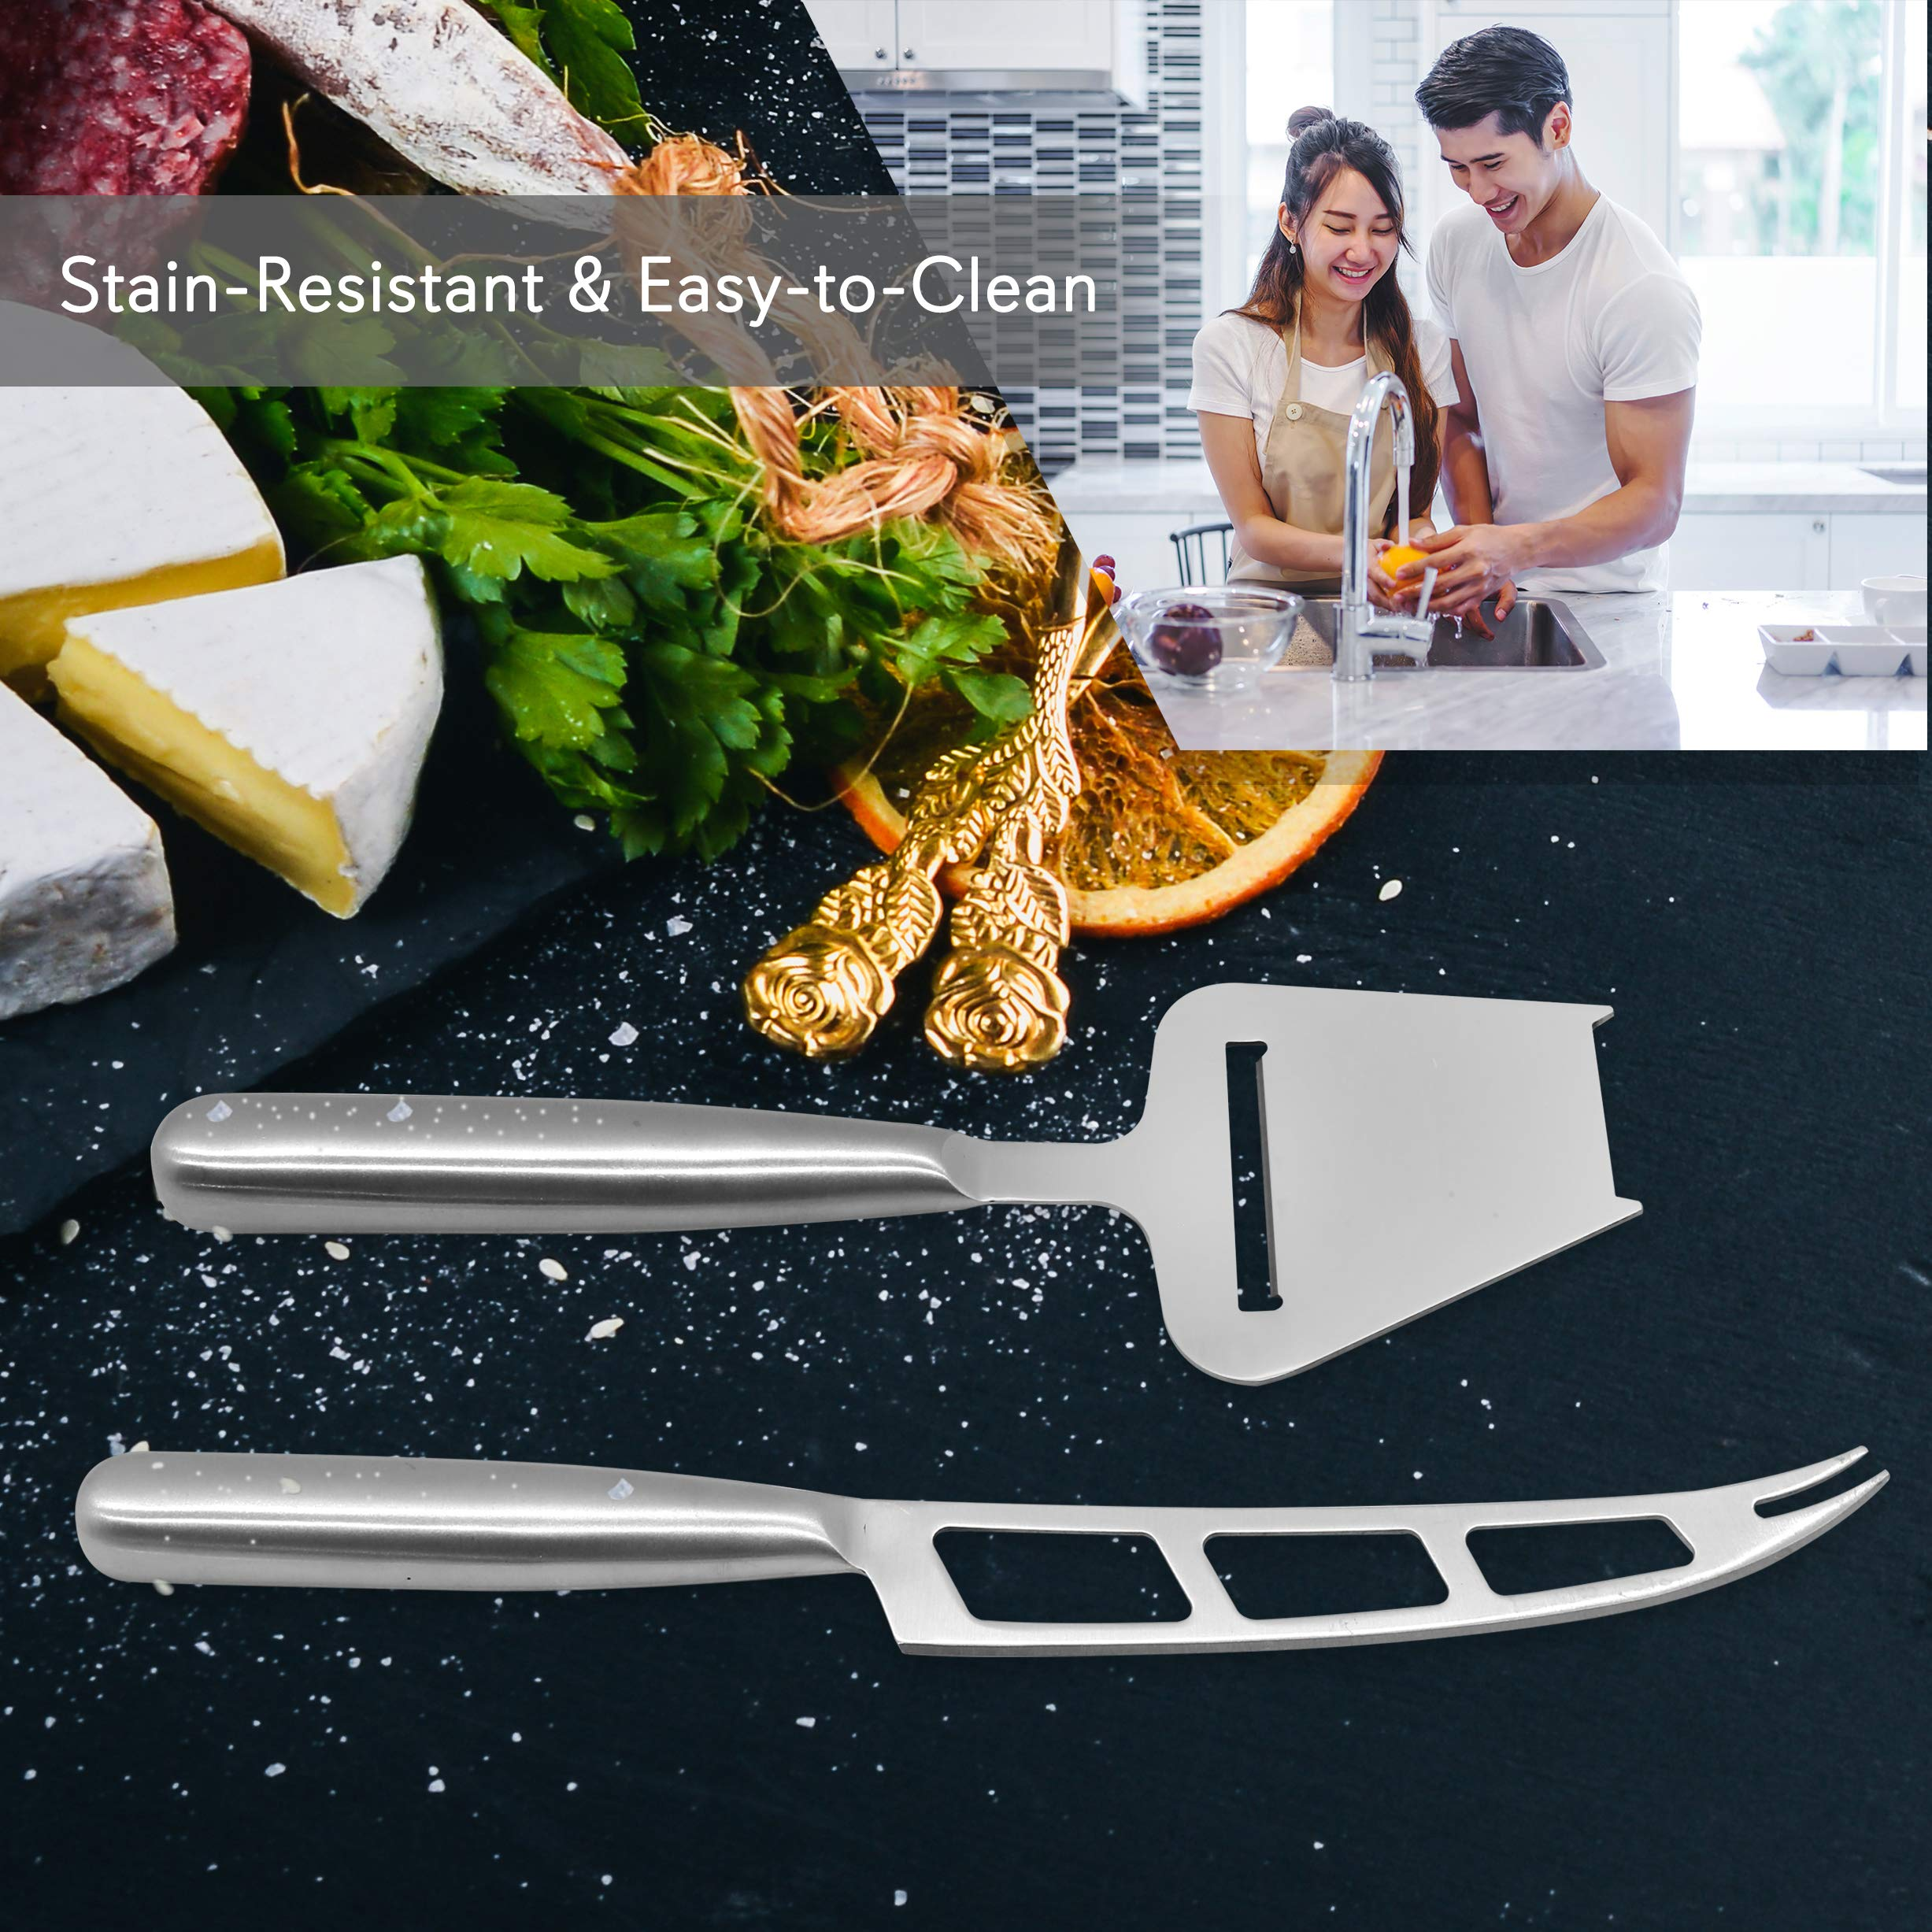 2 Piece Cheese Cutting Set - Portable Fancy Stainless Steel Non Stick Cheese Cutter Knife and Cheese Slicer - Cut, Shave, Slice, Serve, Spread - Gouda Blue Brie Parmesan Cheddar - NutriChef PKCNF10 by Nutrichef (Image #4)